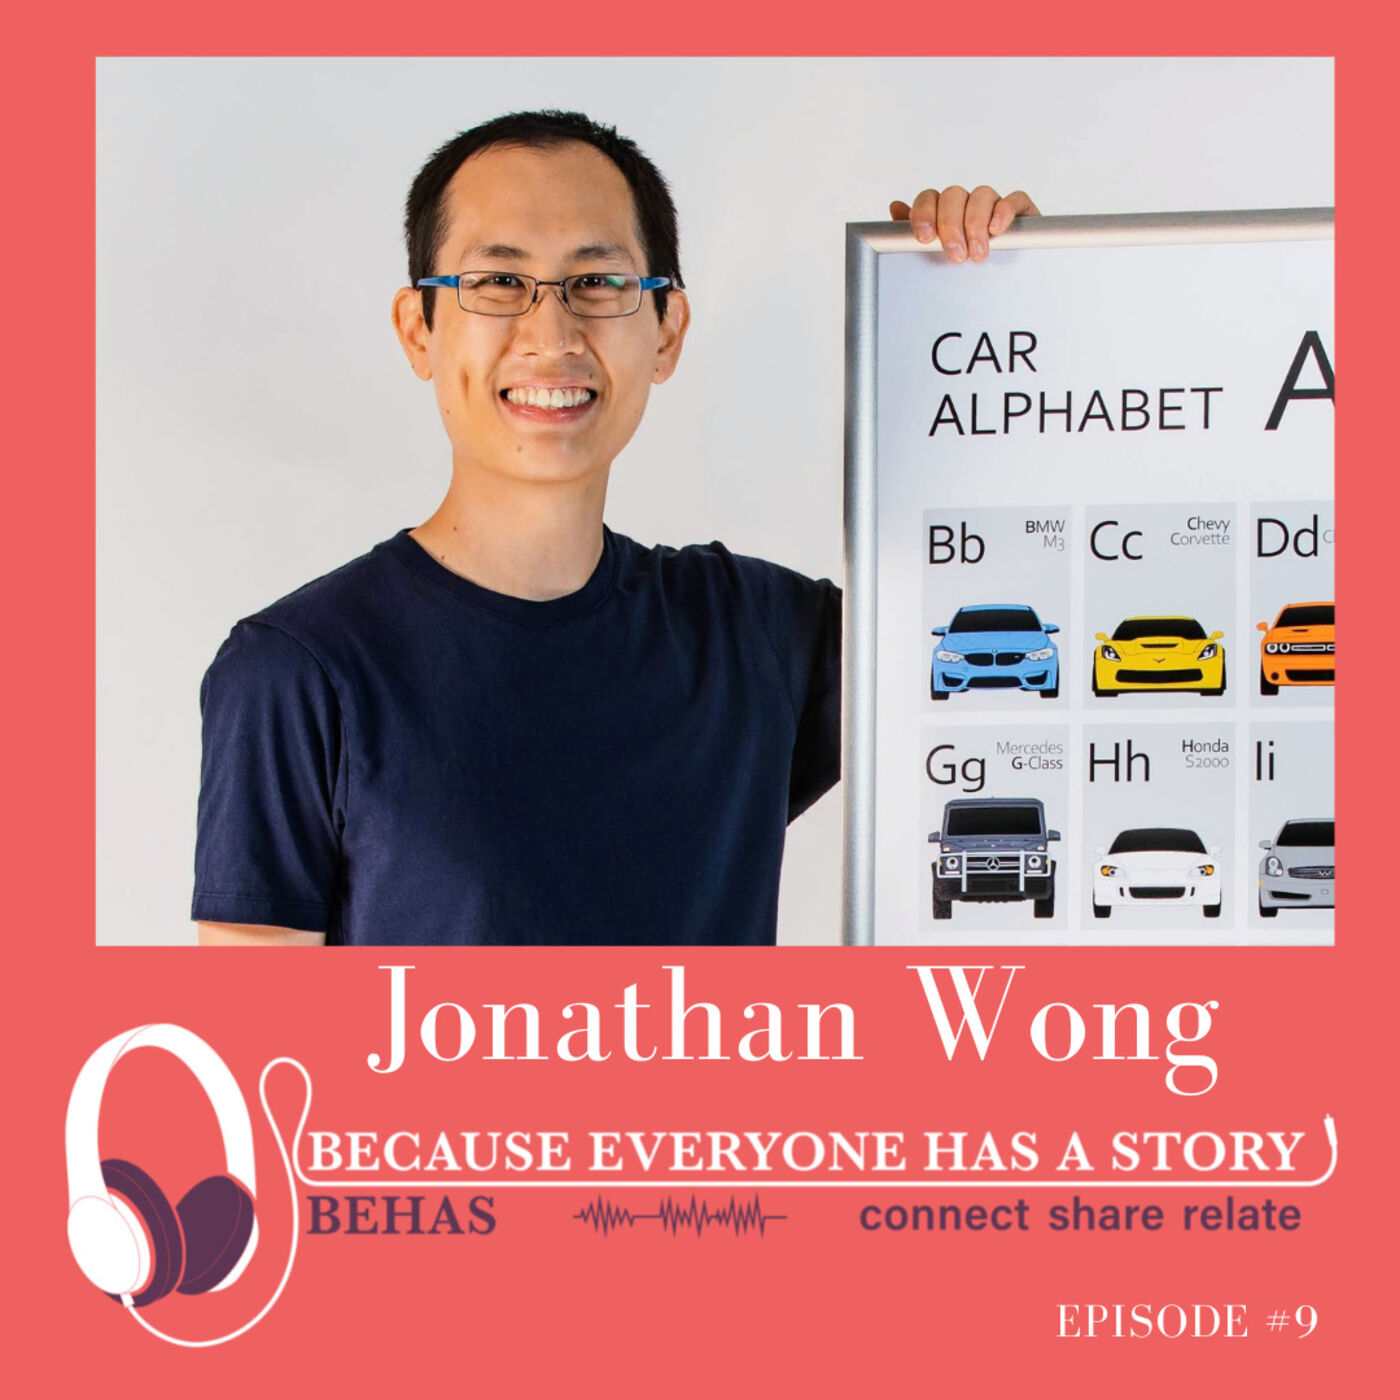 #9 - Transitioning From Accountant To Self Employed Artist - Jonathan Wong